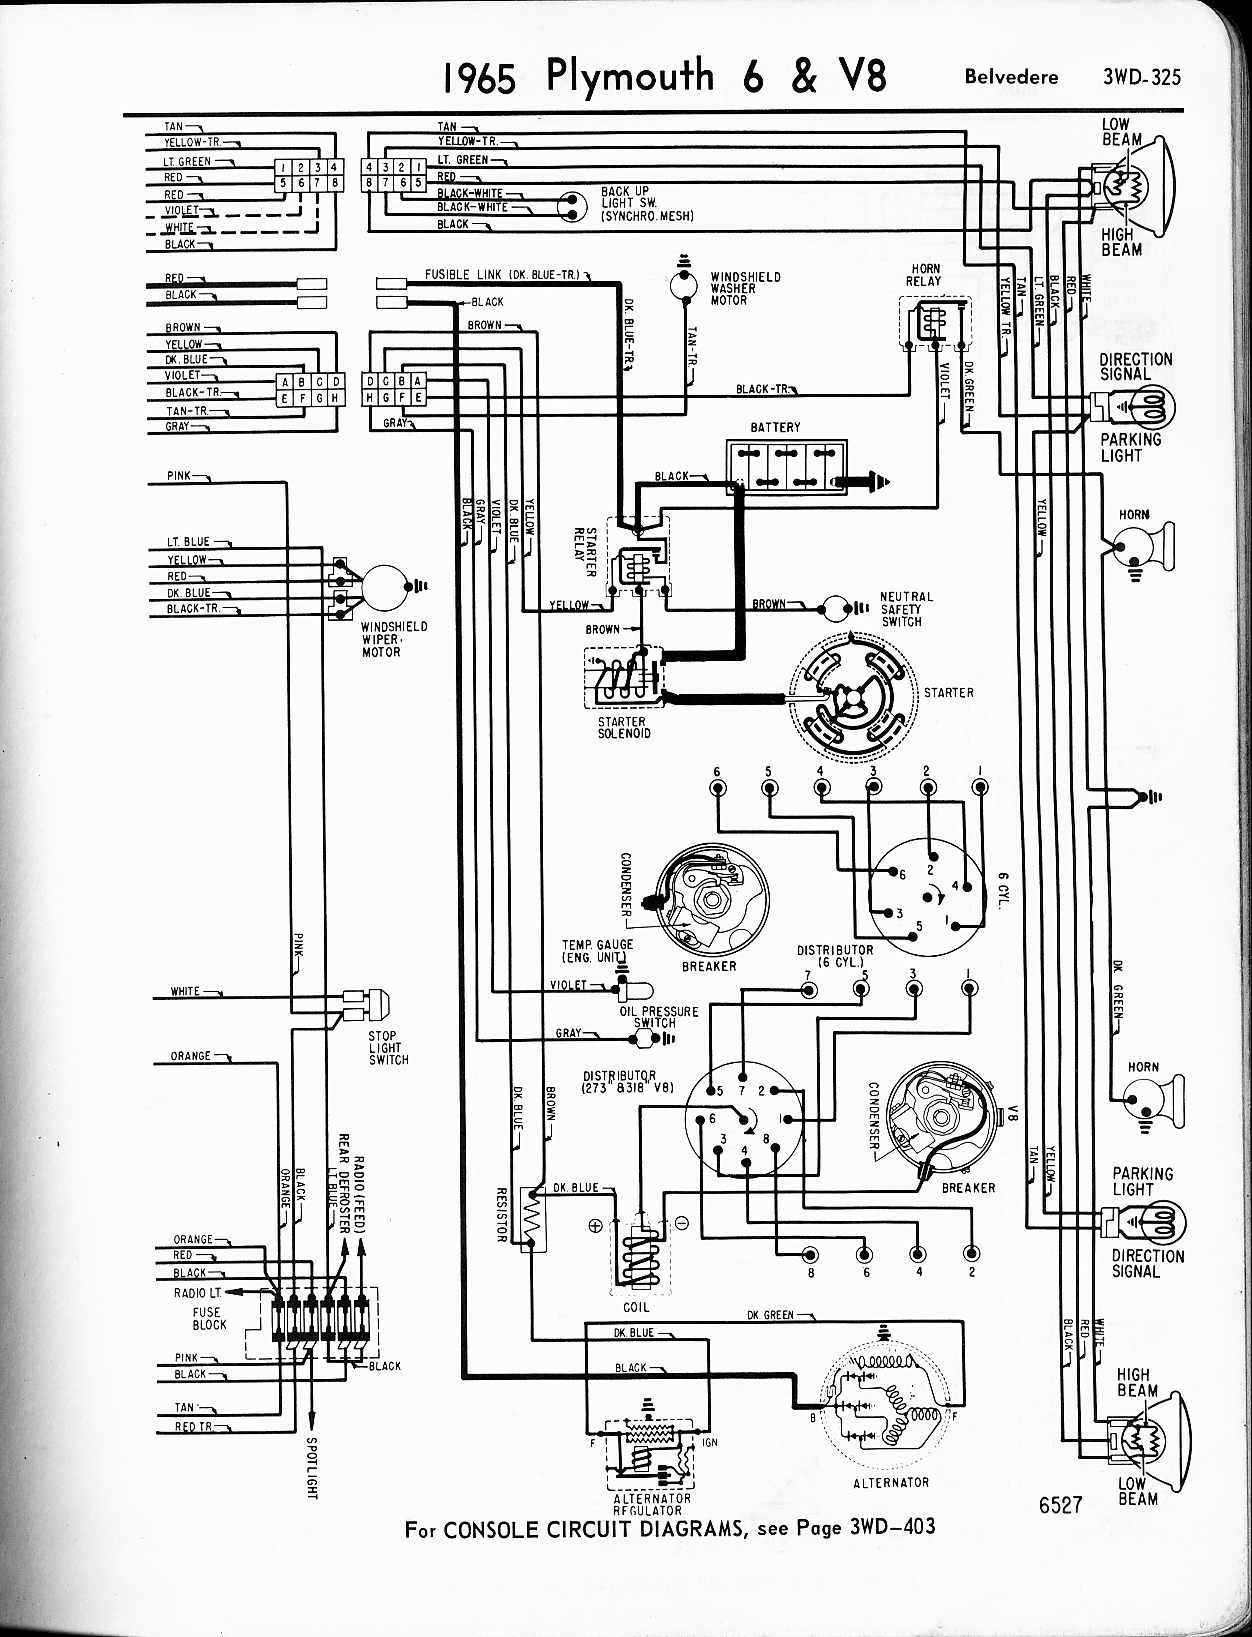 hight resolution of 66 fury wiring diagram wiring diagram fascinating66 fury wiring diagram wiring diagram info 64 plymouth fury